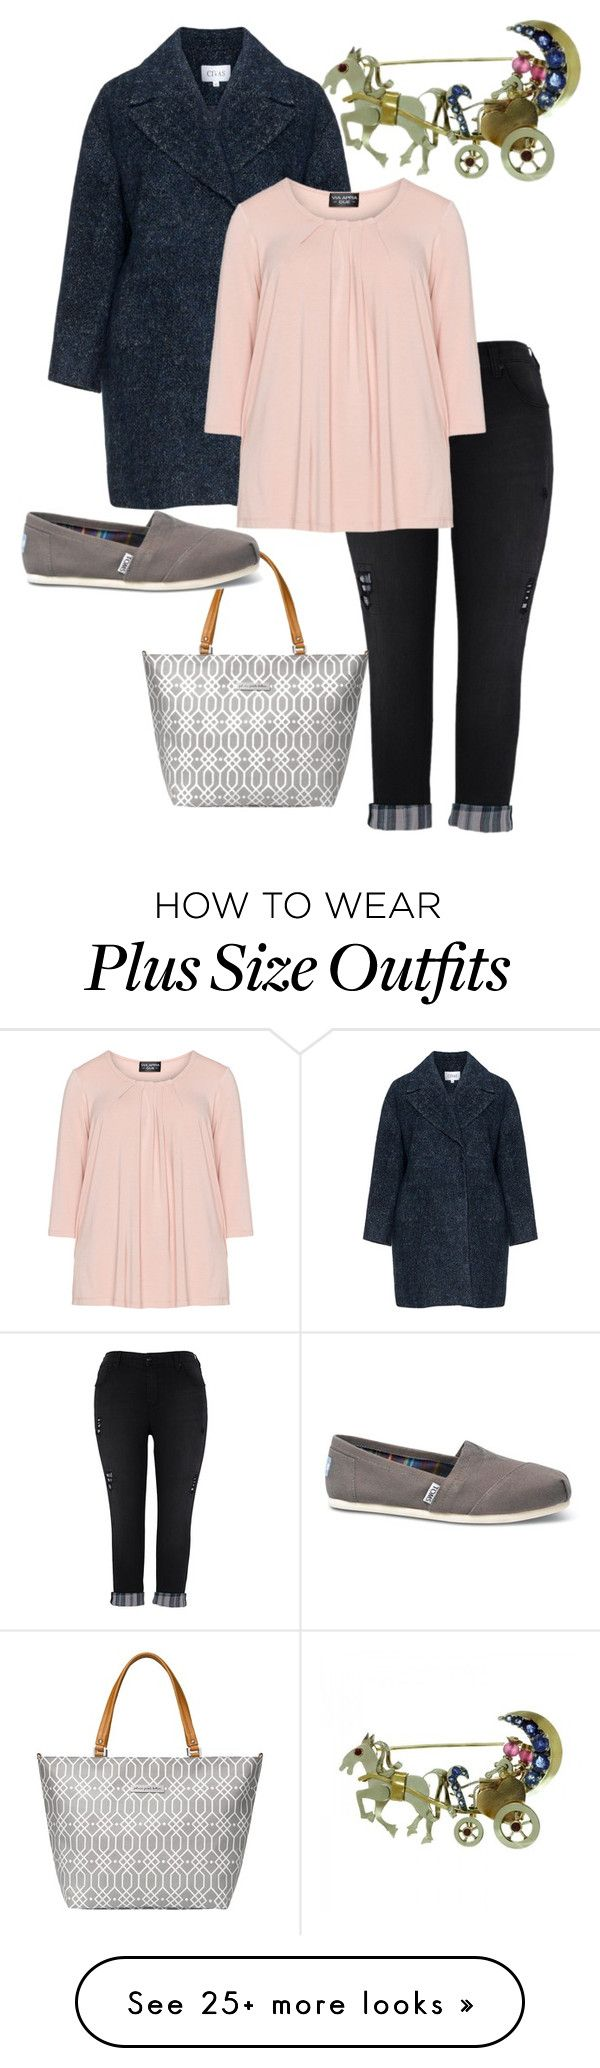 """plus size carriage"" by aleger-1 on Polyvore featuring Melissa McCarthy Seven7, Petunia Pickle Bottom, TOMS and plus size clothing"